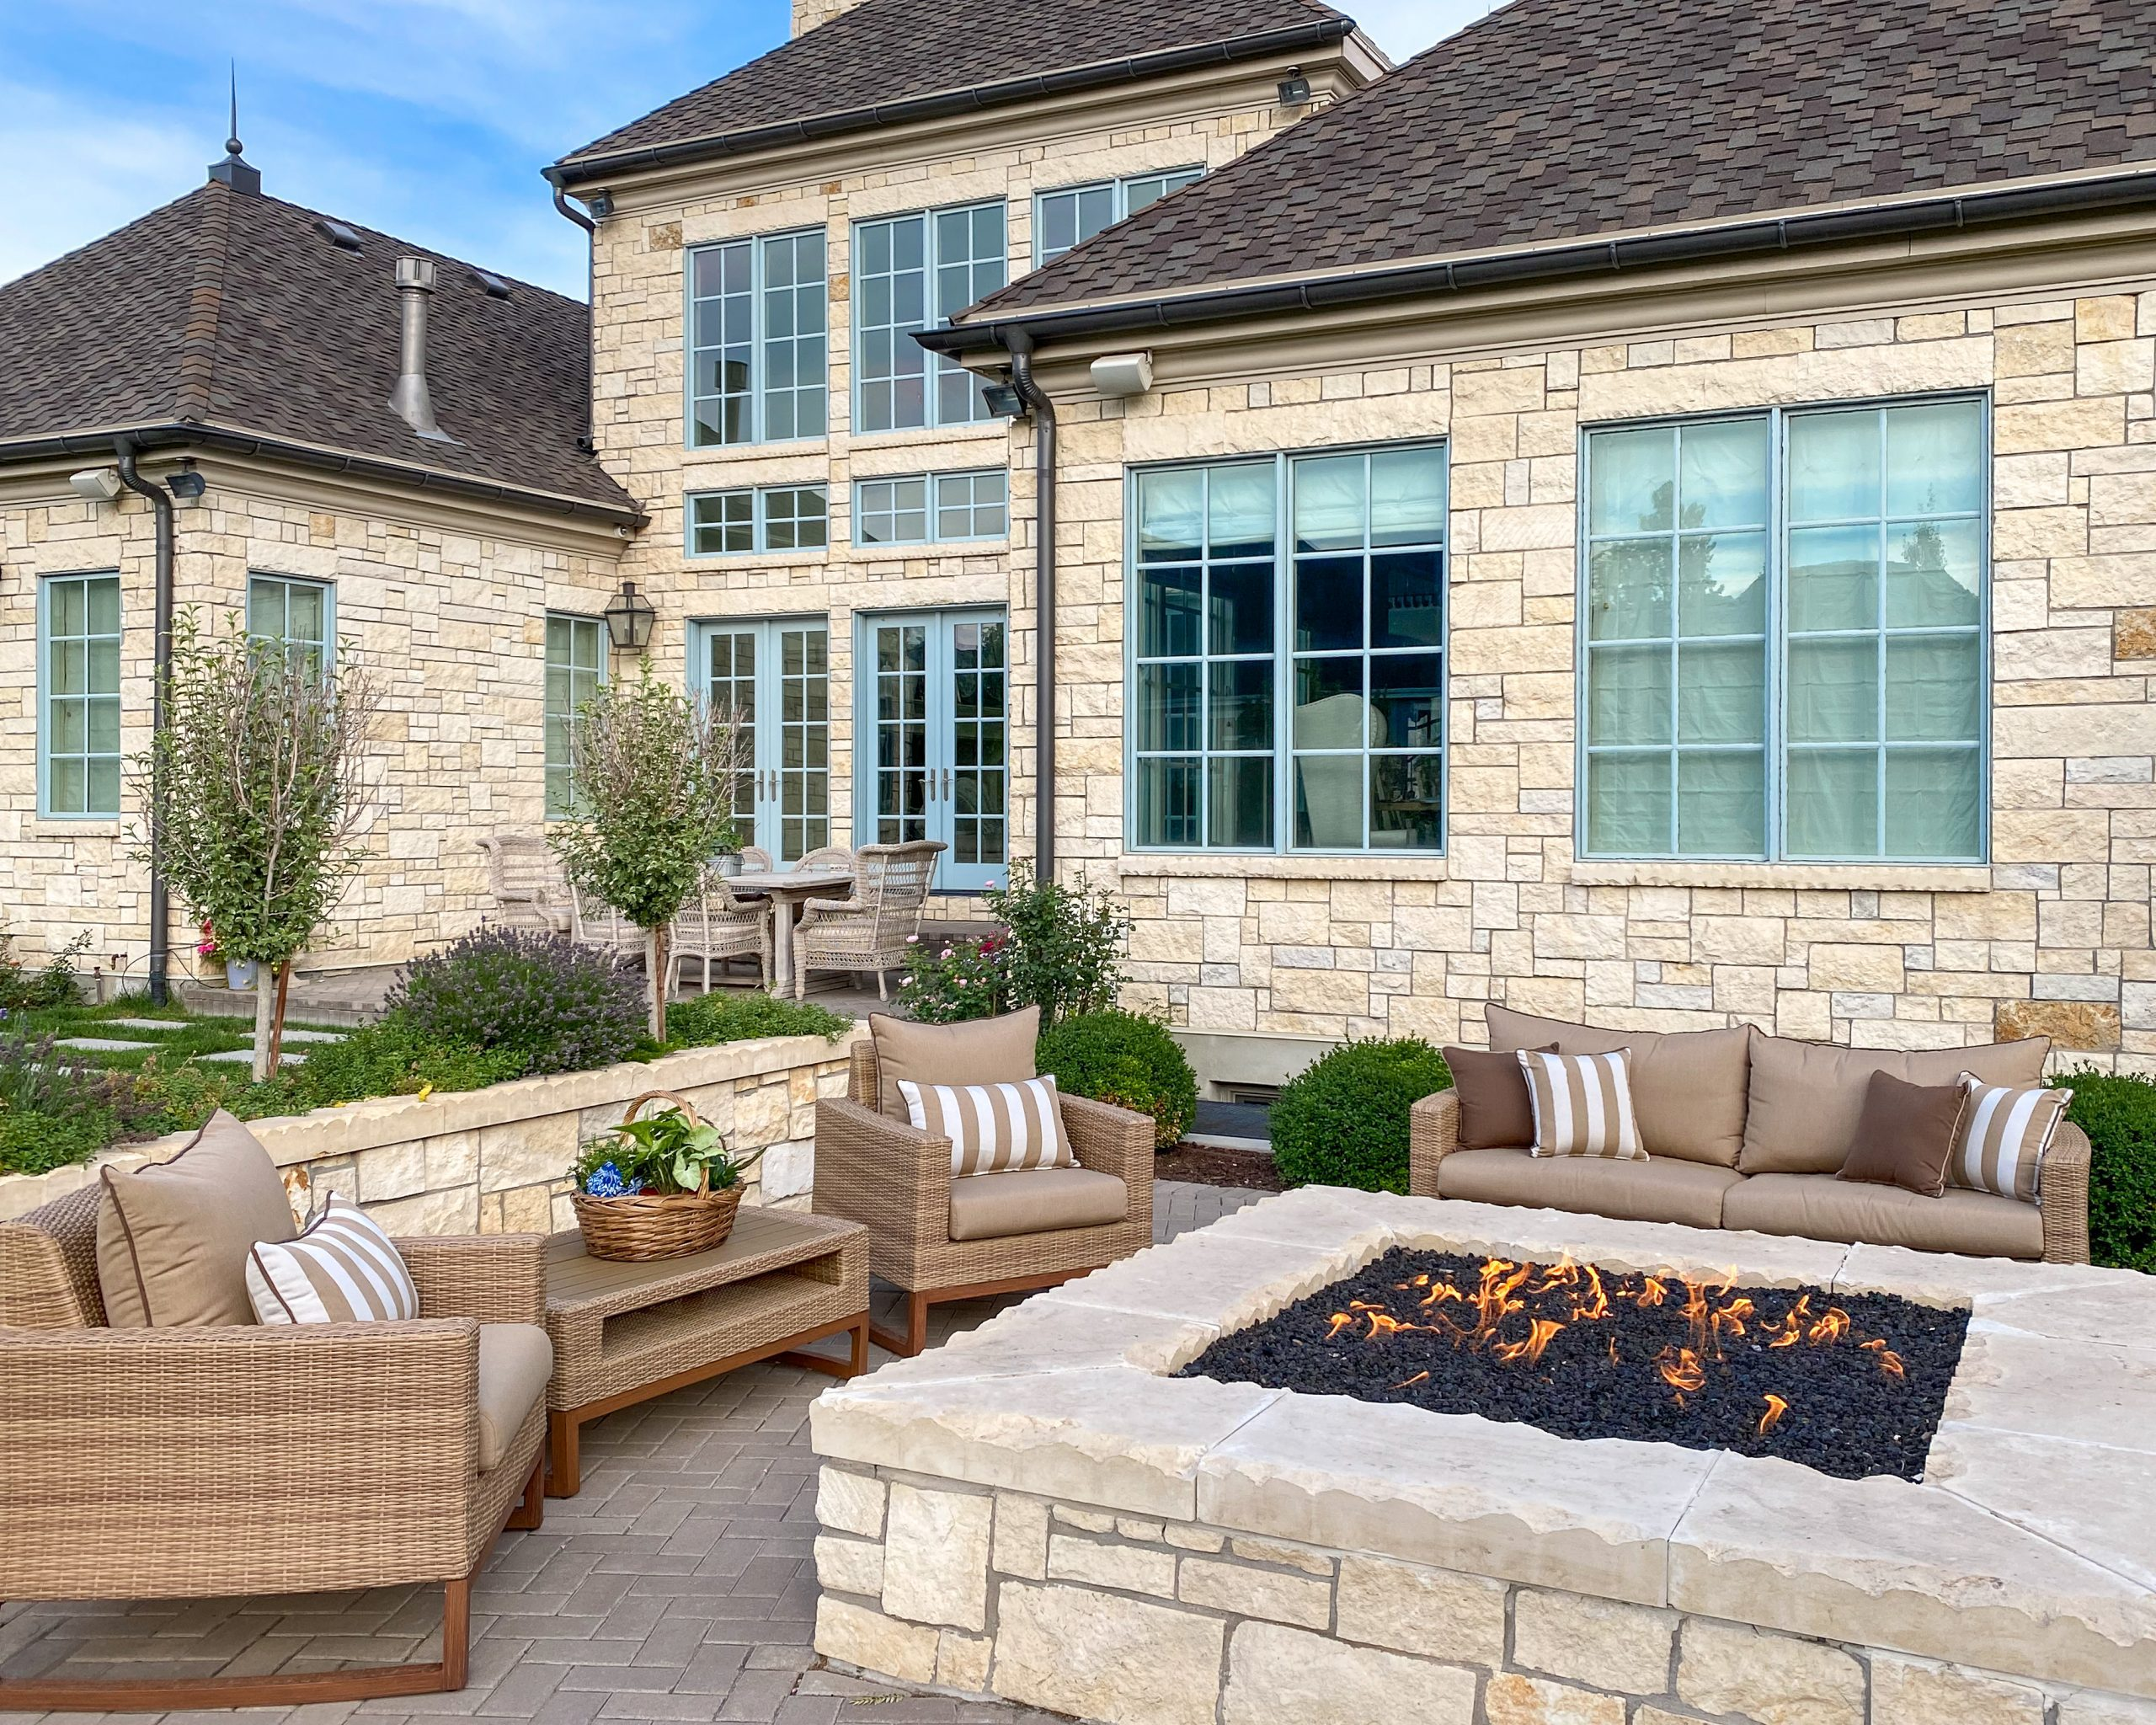 fire pit outdoor backyard space